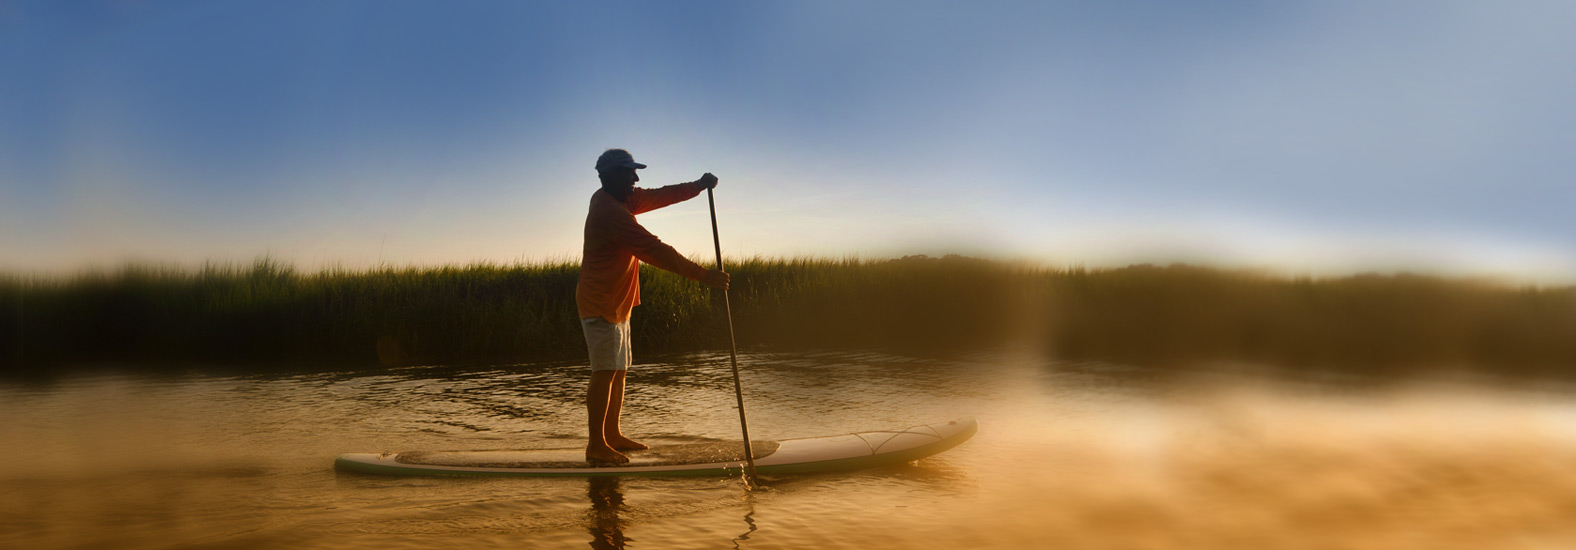 Man riding a paddleboard